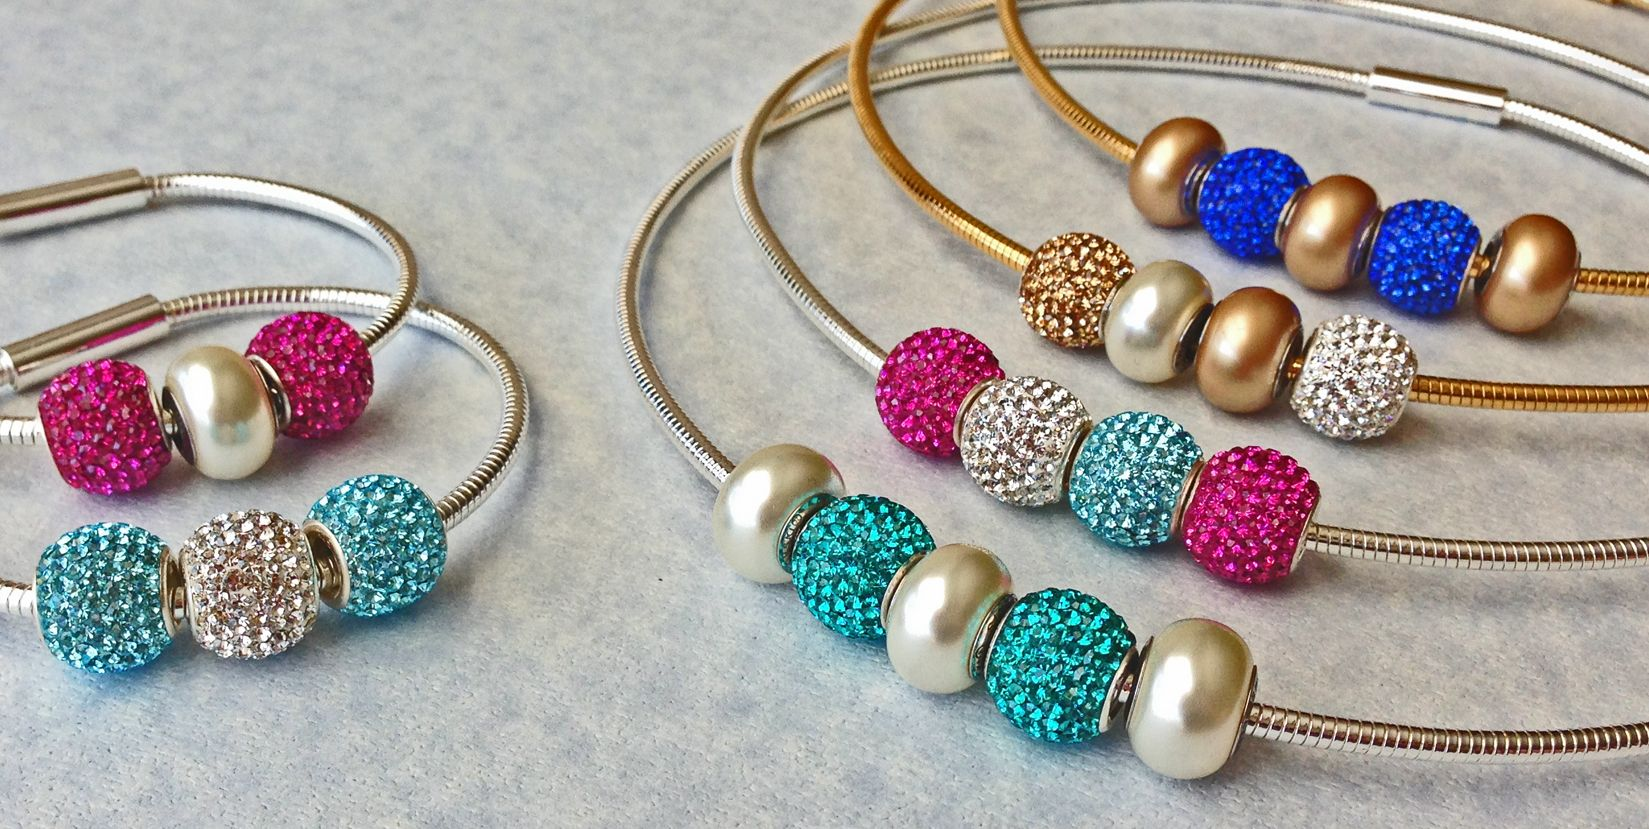 Swarovski crystal studded charms with their pearlized charms are not only stunning but affordable in our necklace and bracelet designs!  Many more coming soon~